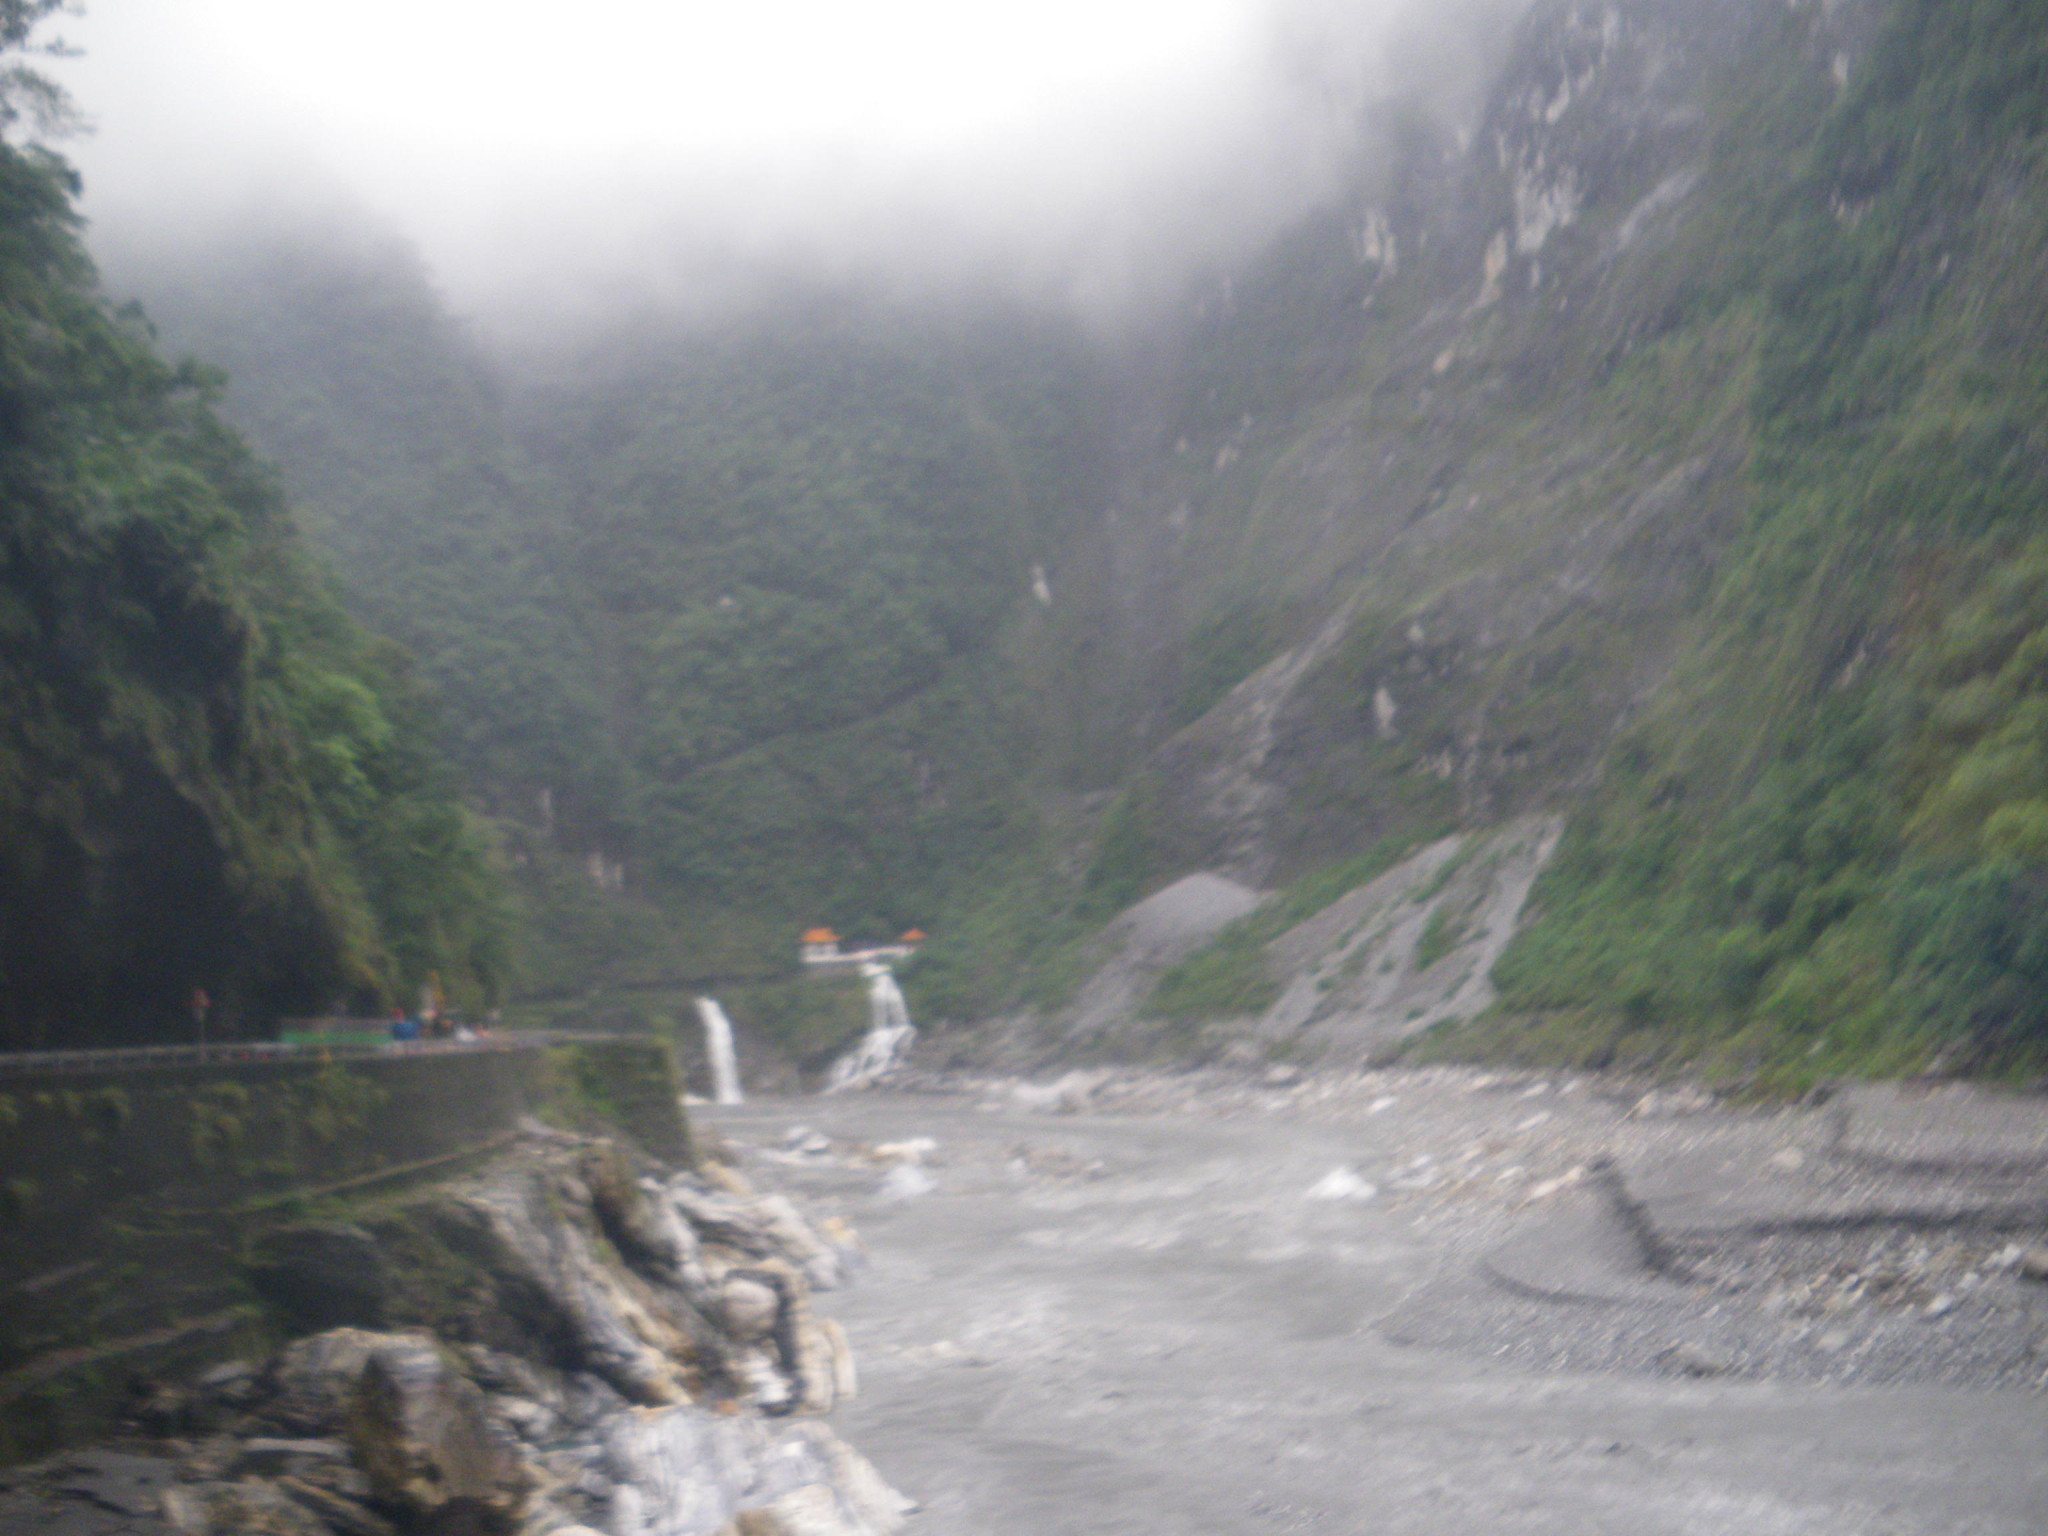 Jonny Blair Don't Stop Living at Taroko Gorge